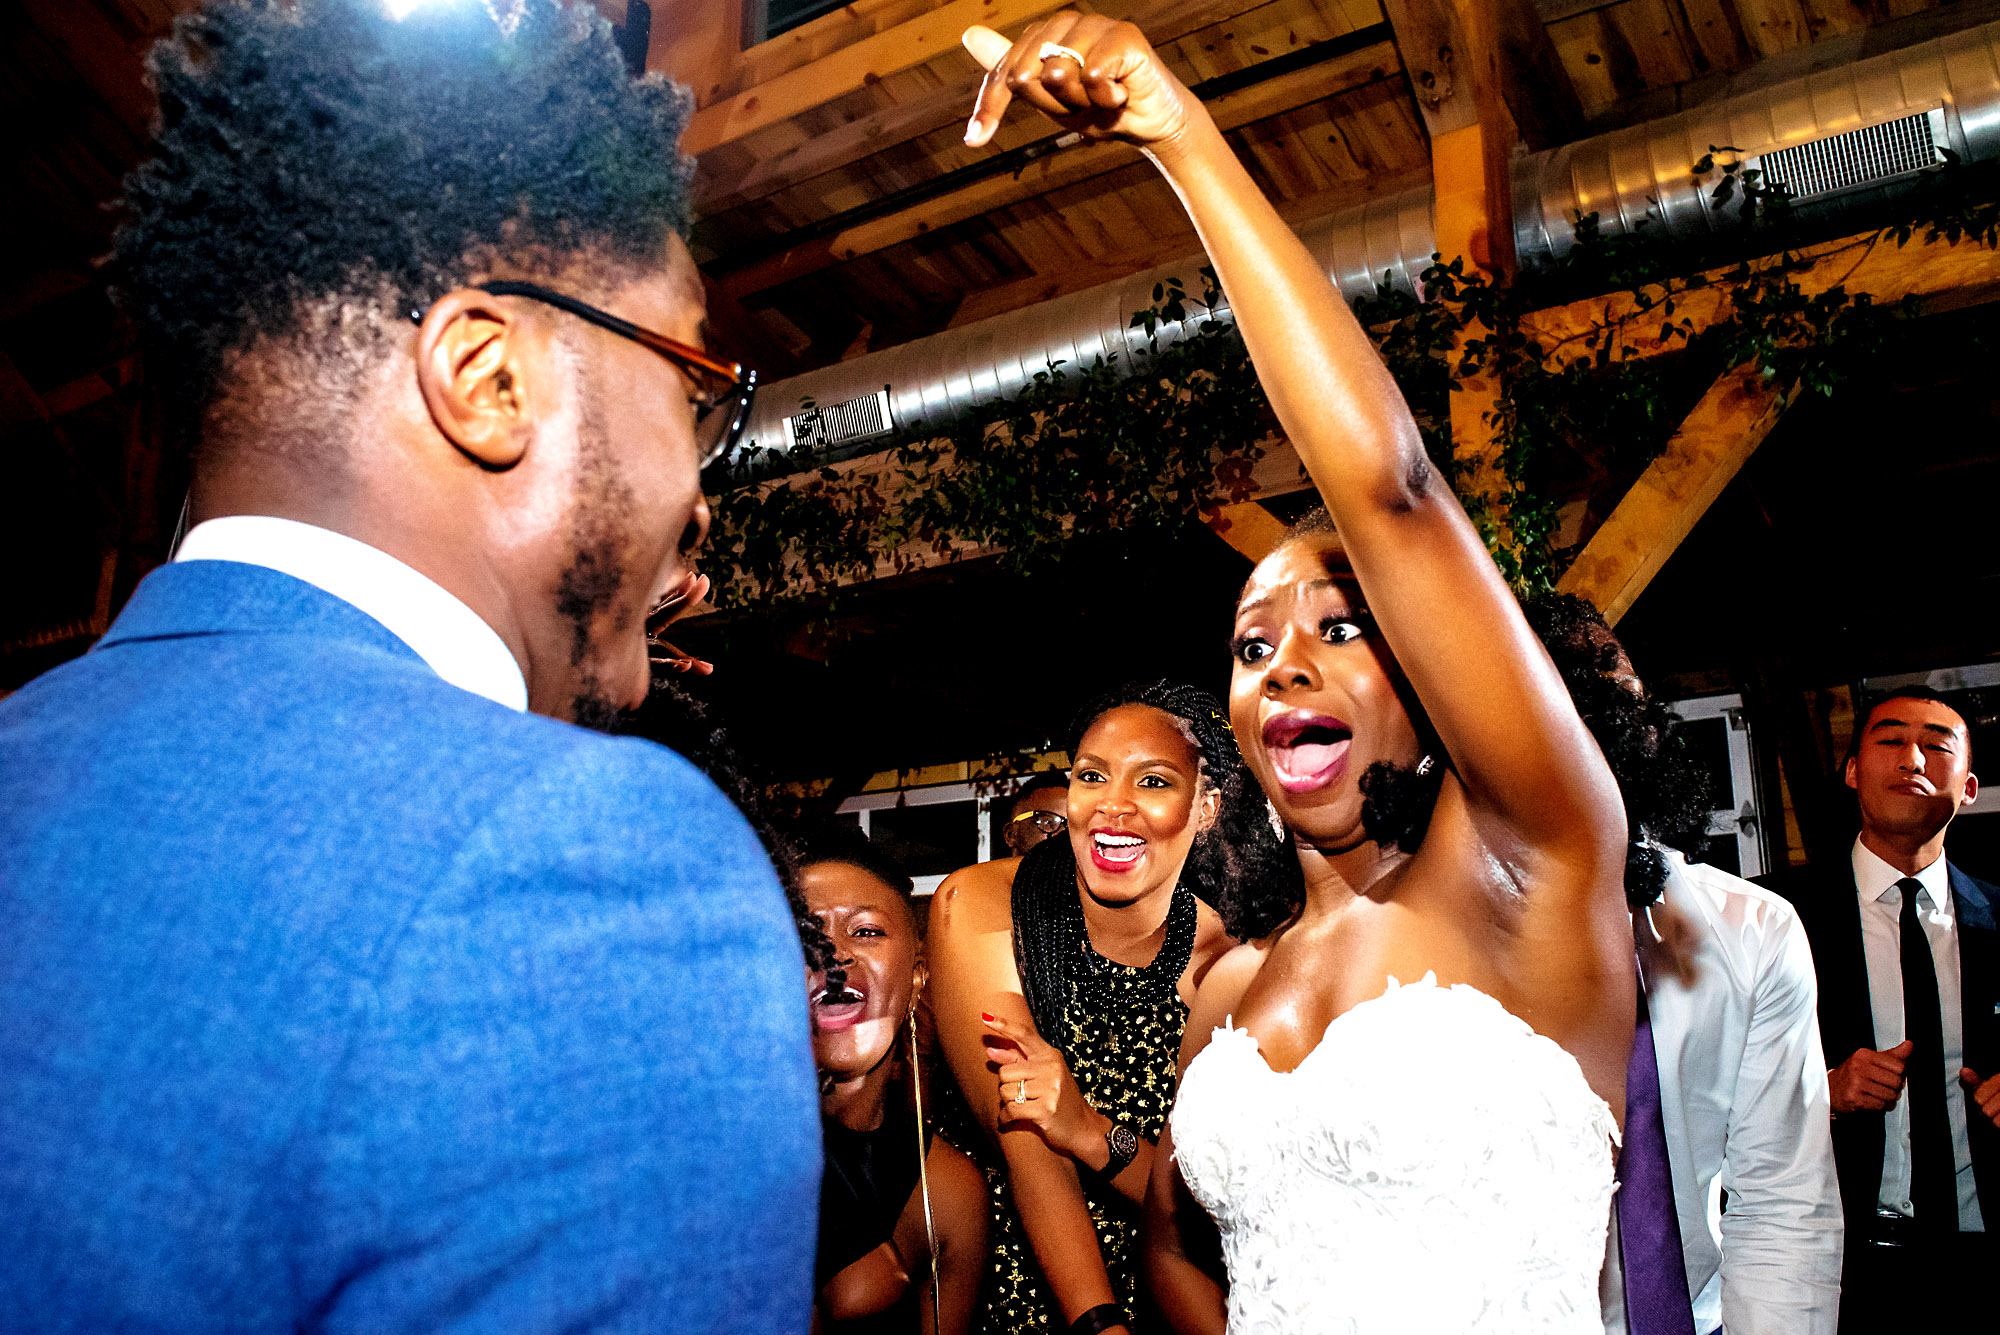 bride jumping with hands pointed to guest.jpg